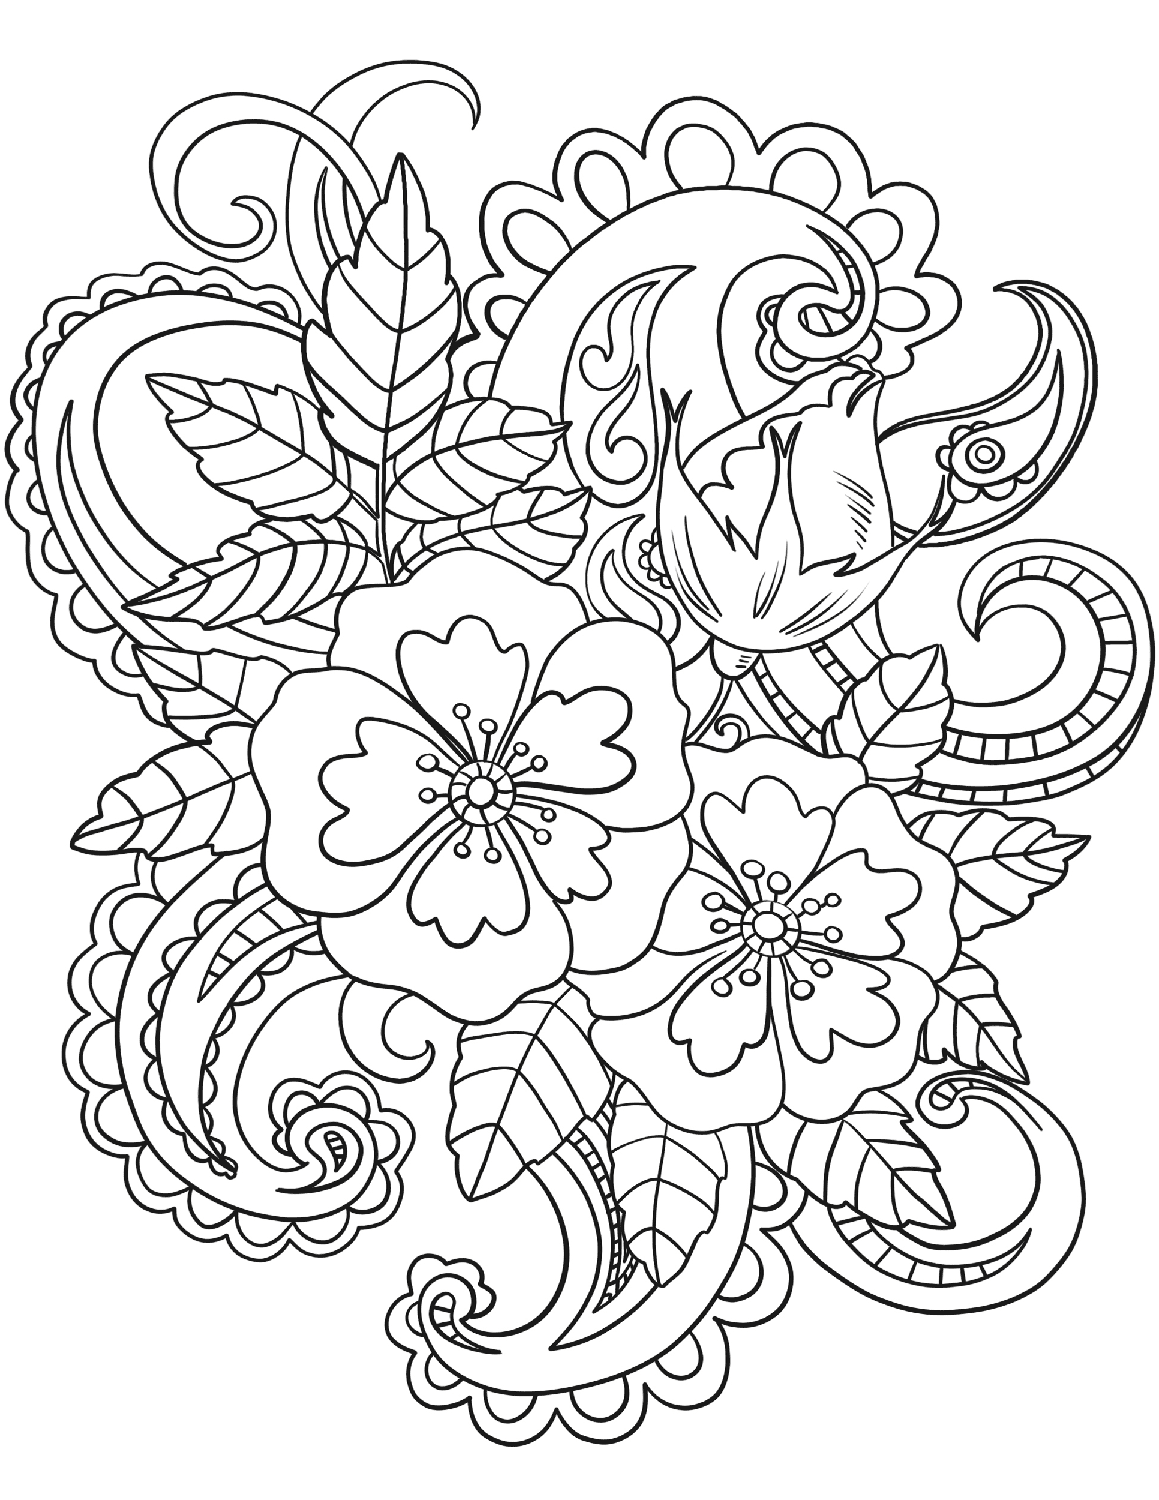 coloring pages for adults patterns free printable adult coloring page detailed star pattern pages patterns adults for coloring